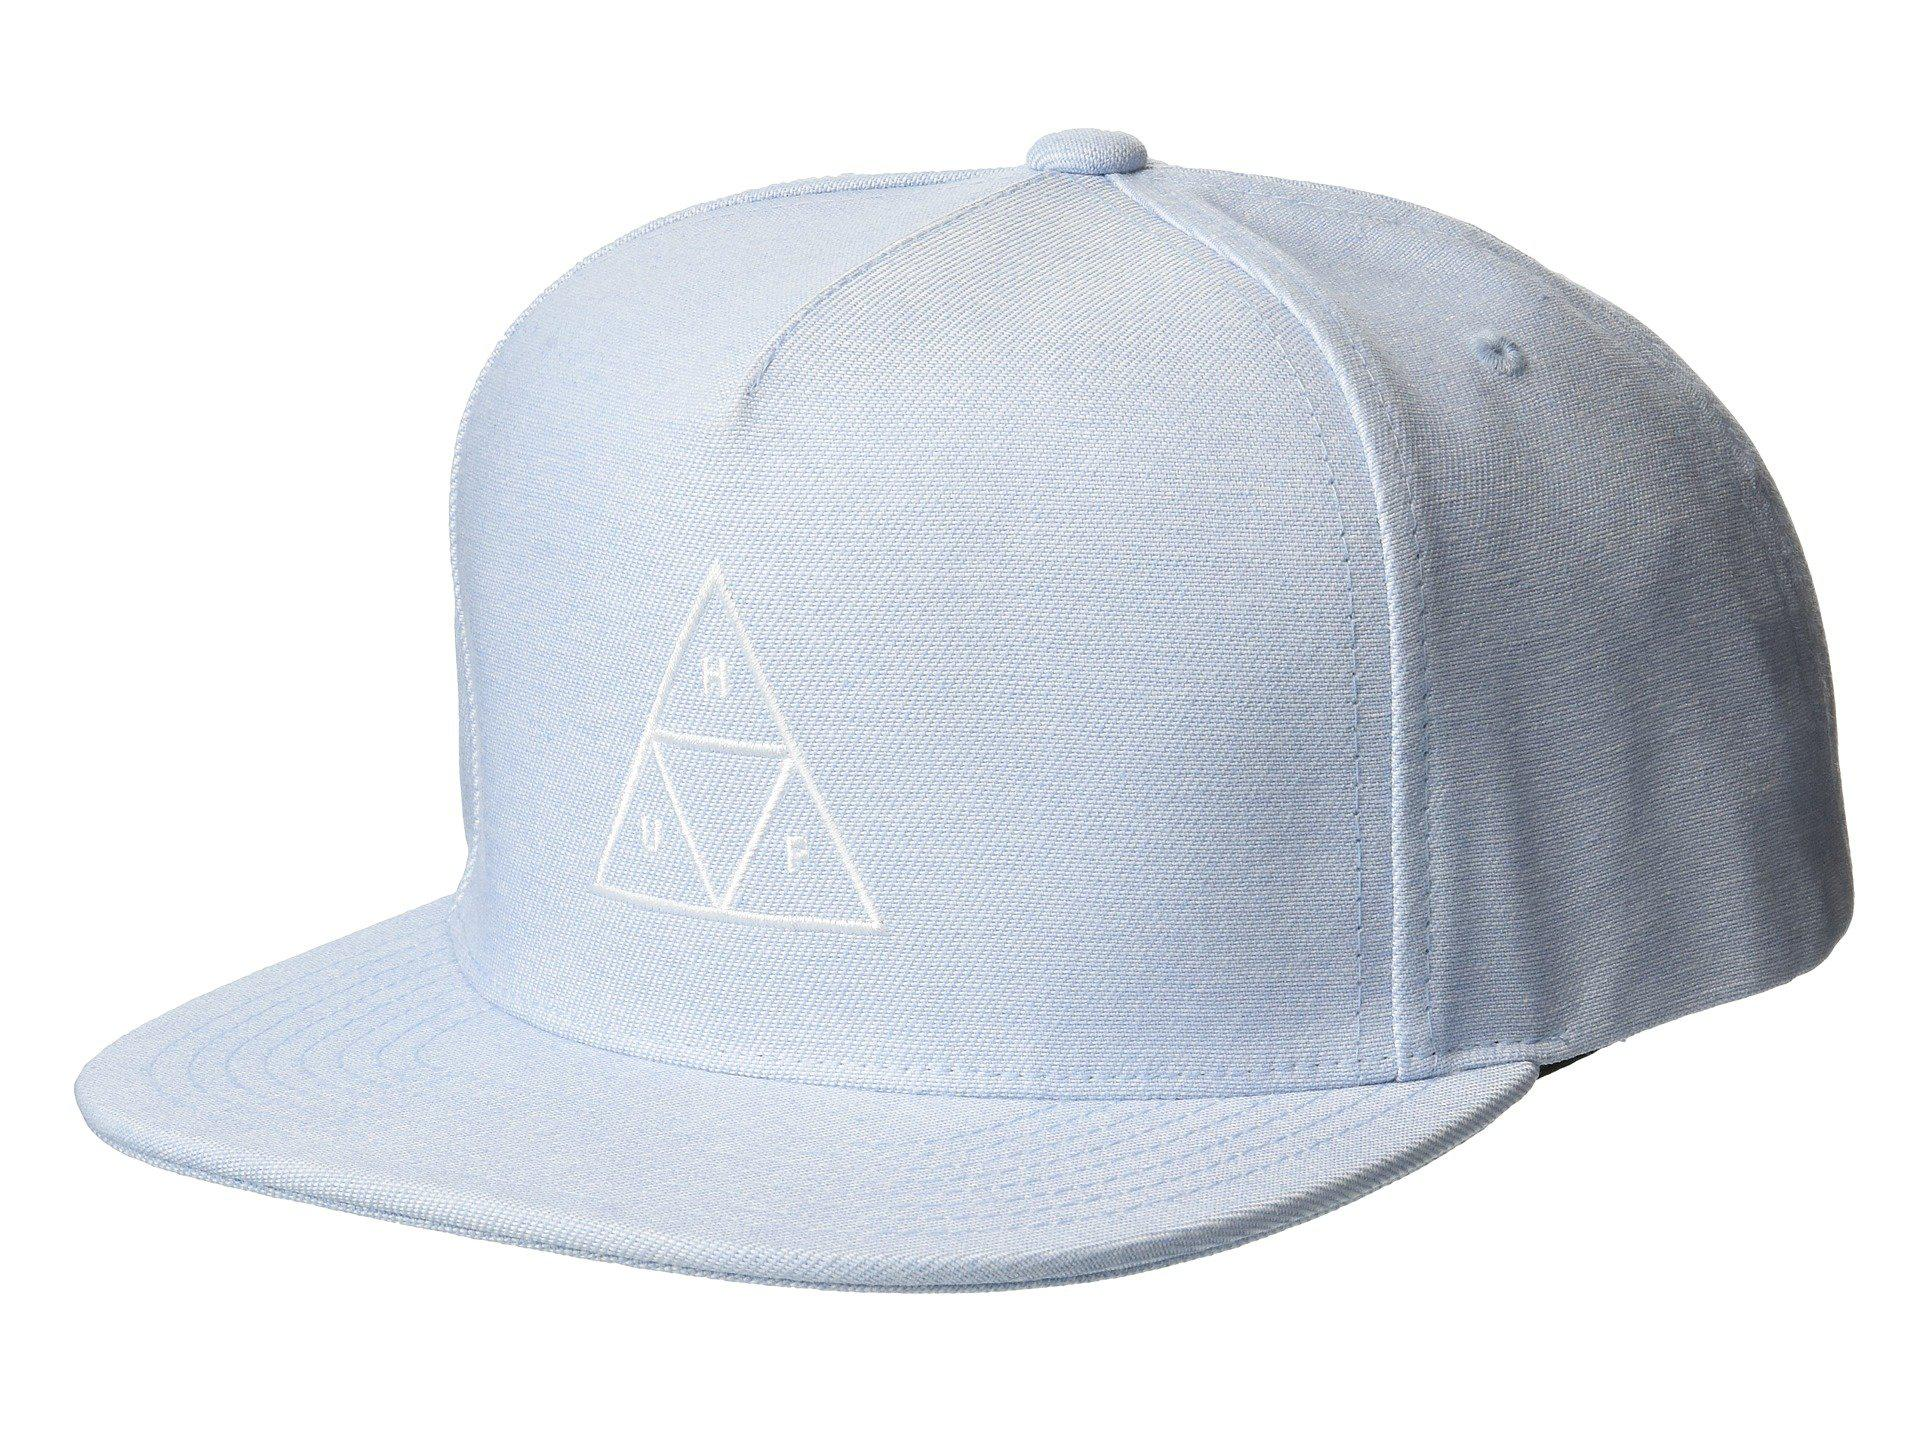 Lyst - Huf Triple Triangle Snapback in Blue for Men - Save 44% ba327d19e038